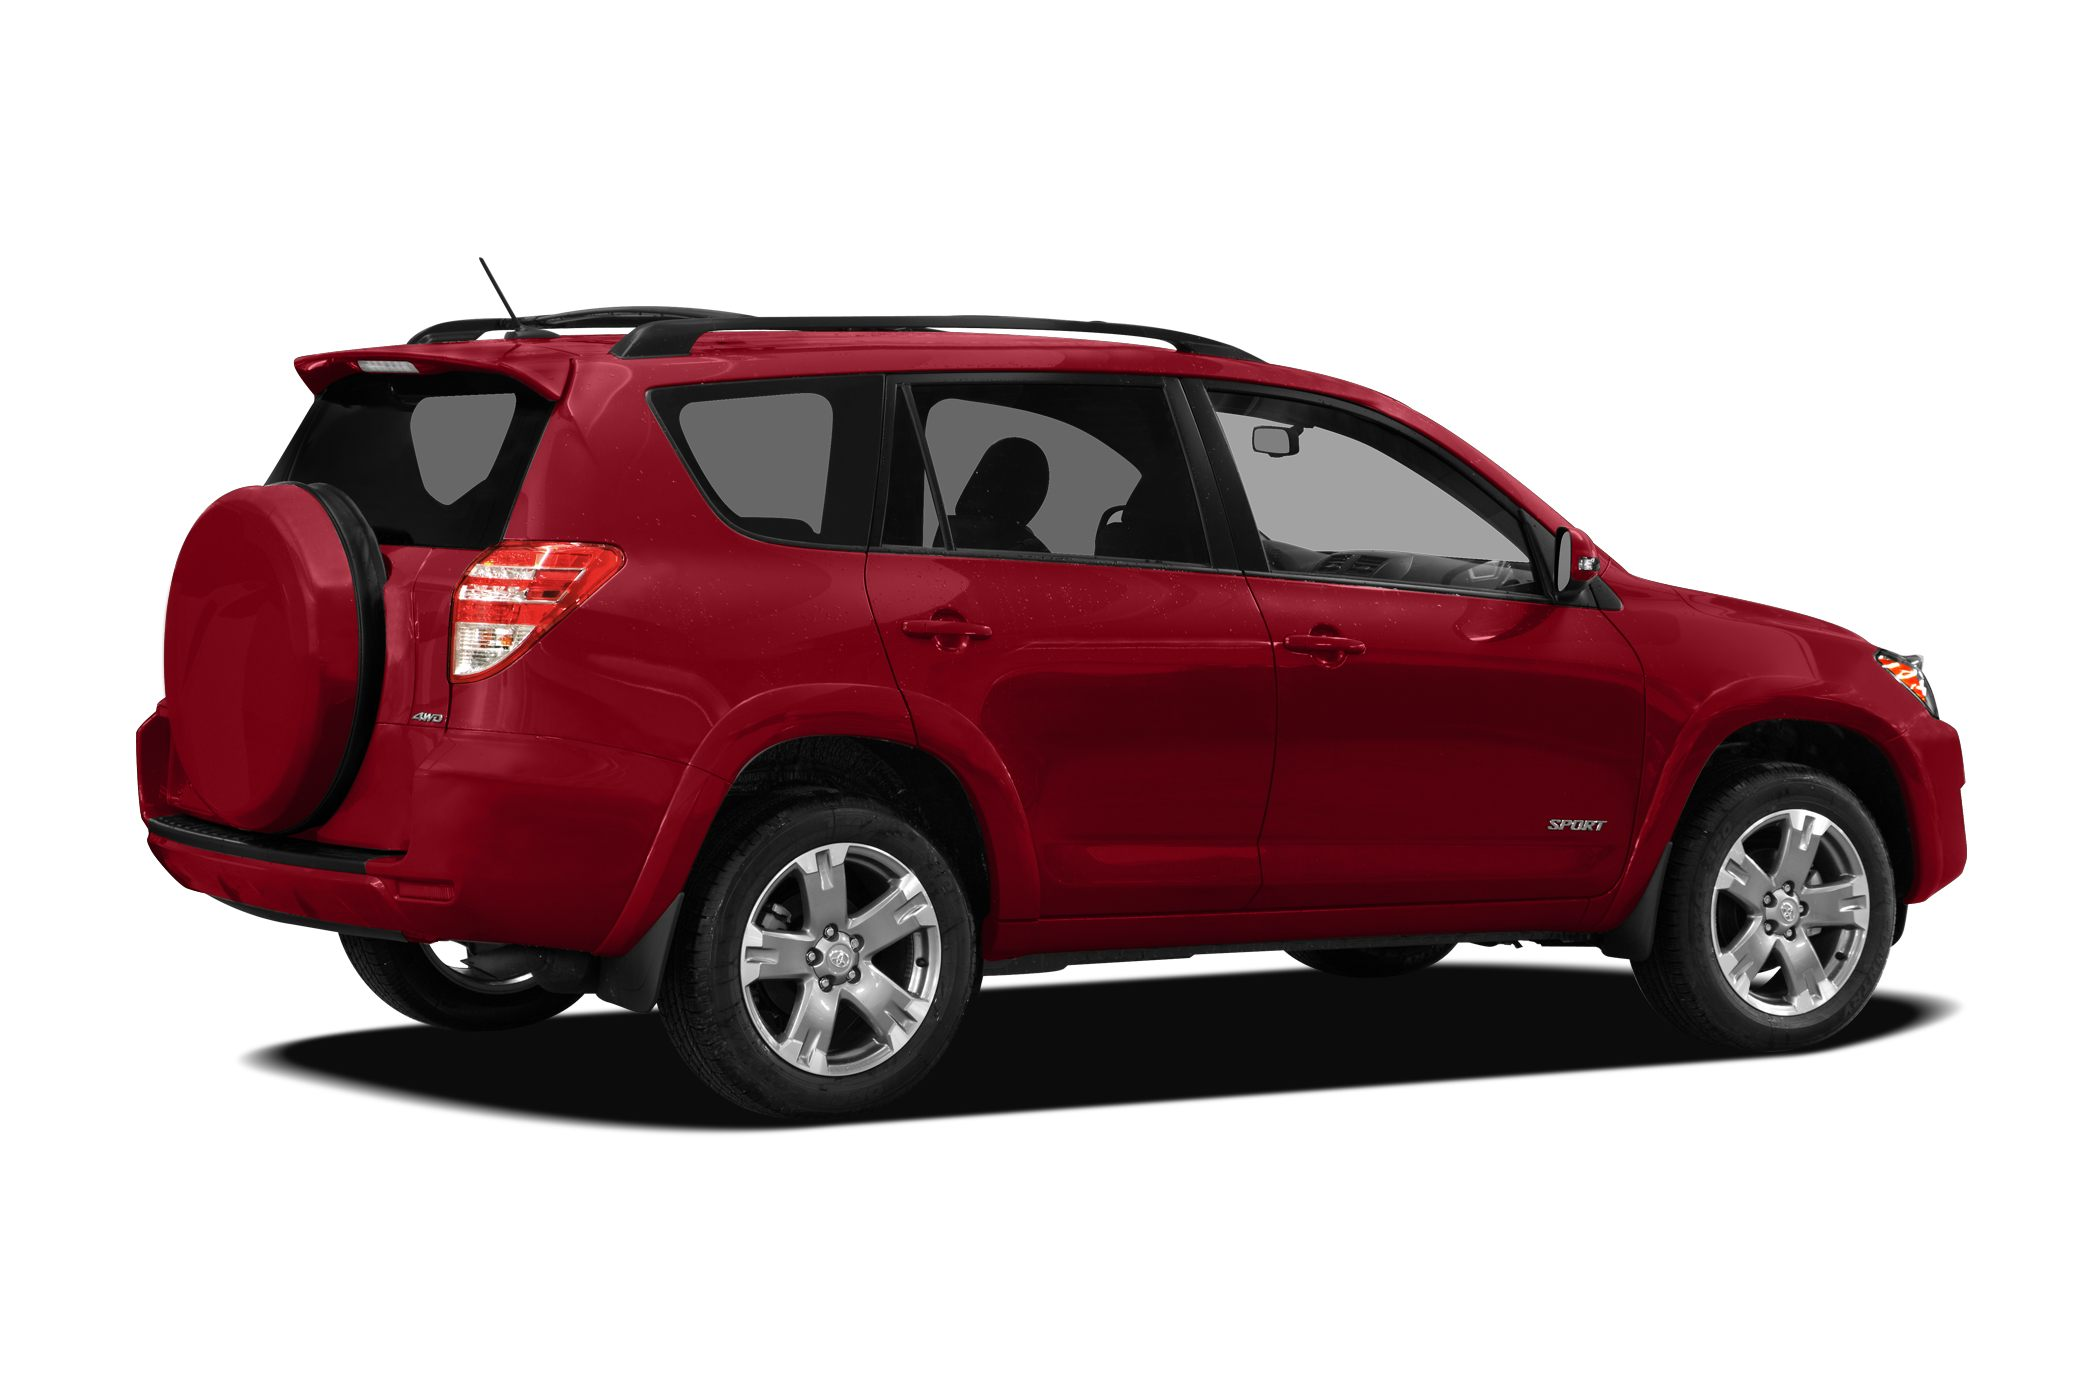 2009 Toyota RAV4 Base Vehicle Options 4WDAWD Front Air Dam Second Row Folding Seat ABS Brakes Fro